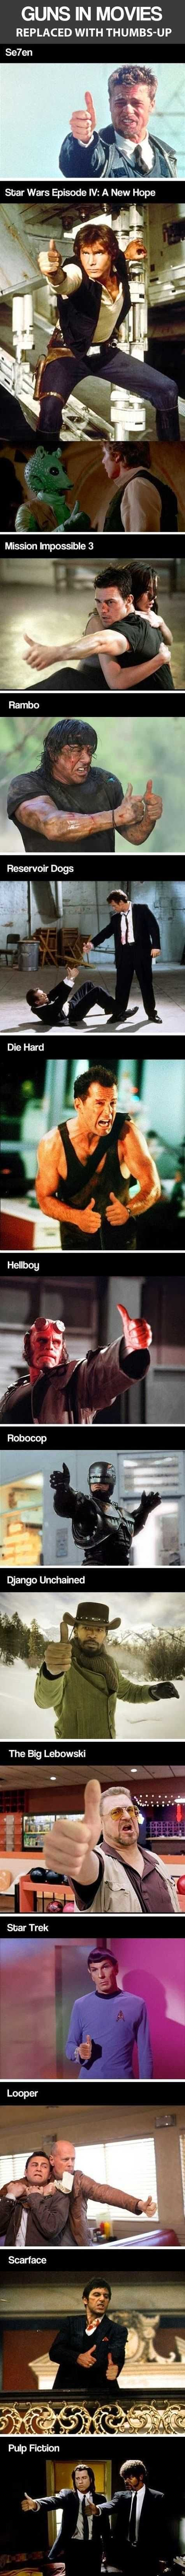 Guns in Movies Replaced with Thumbs-Up - Imgur